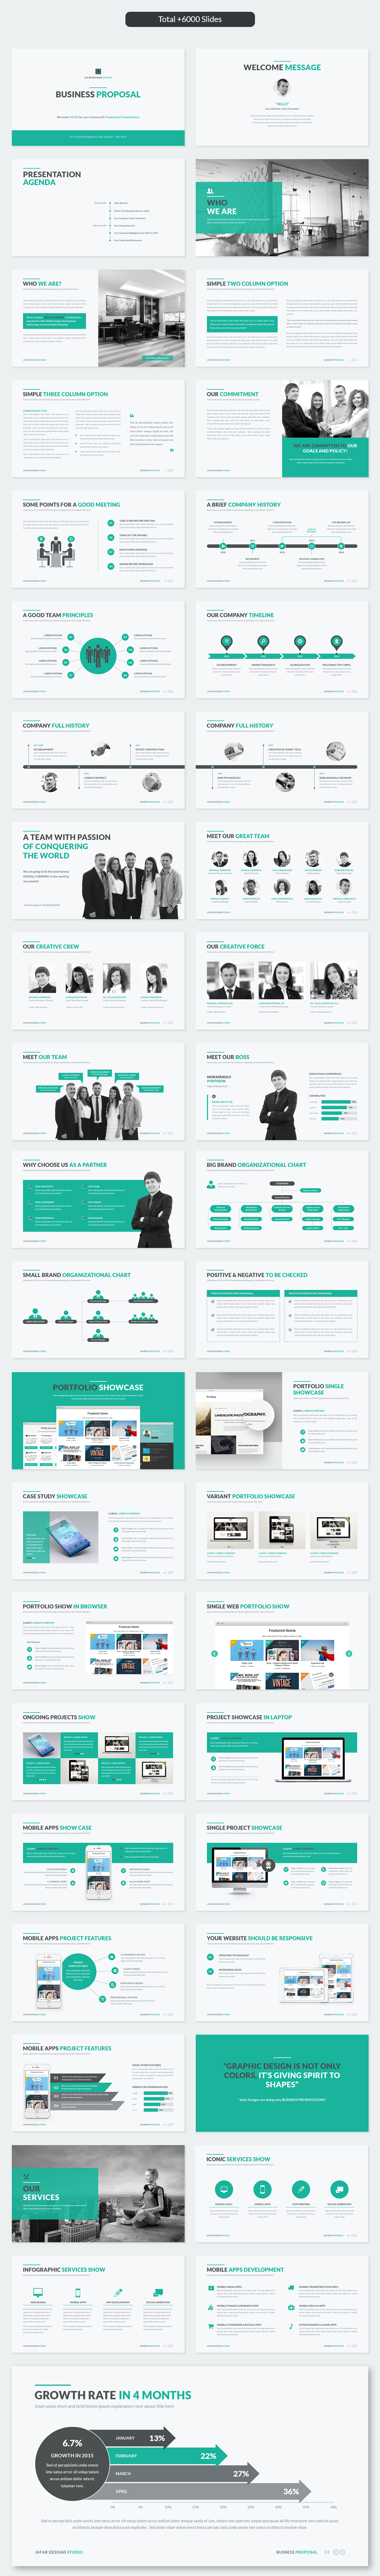 Business proposal powerpoint template on behance business proposal powerpoint template is a clean simple and unique business presentation it contains a lot of handmade diagrams graphs infographics and friedricerecipe Image collections